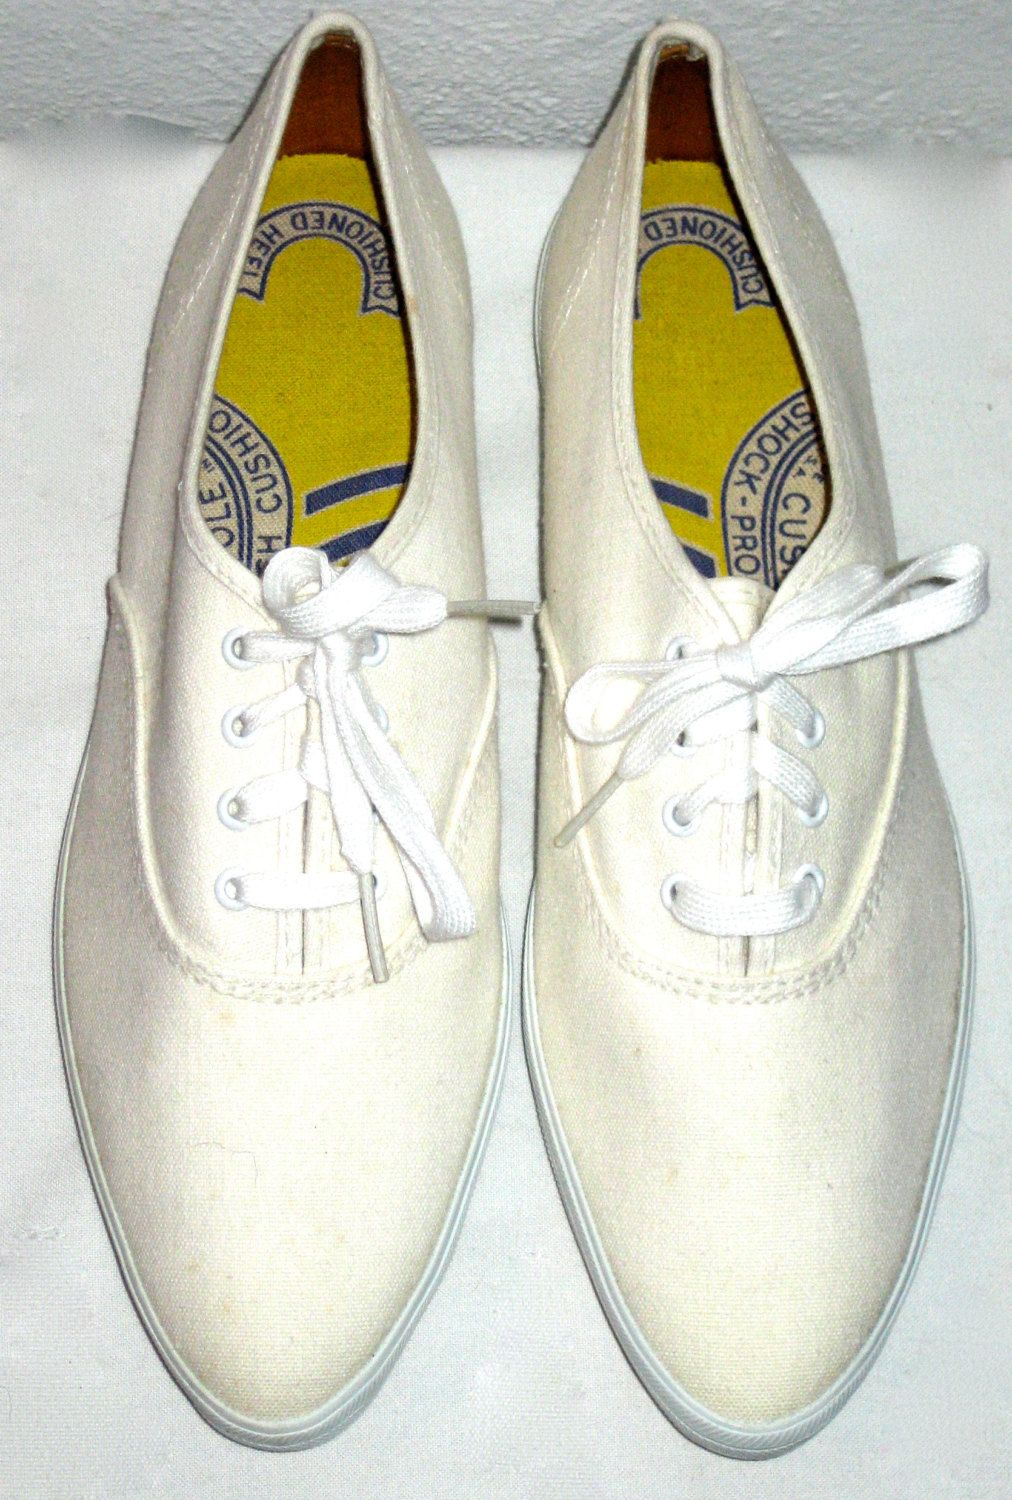 bb4bde339 Vintage 60s era Keds pointy sneakers tennis shoes size 7 new old stock  unworn by sweetalicelovesyou on Etsy